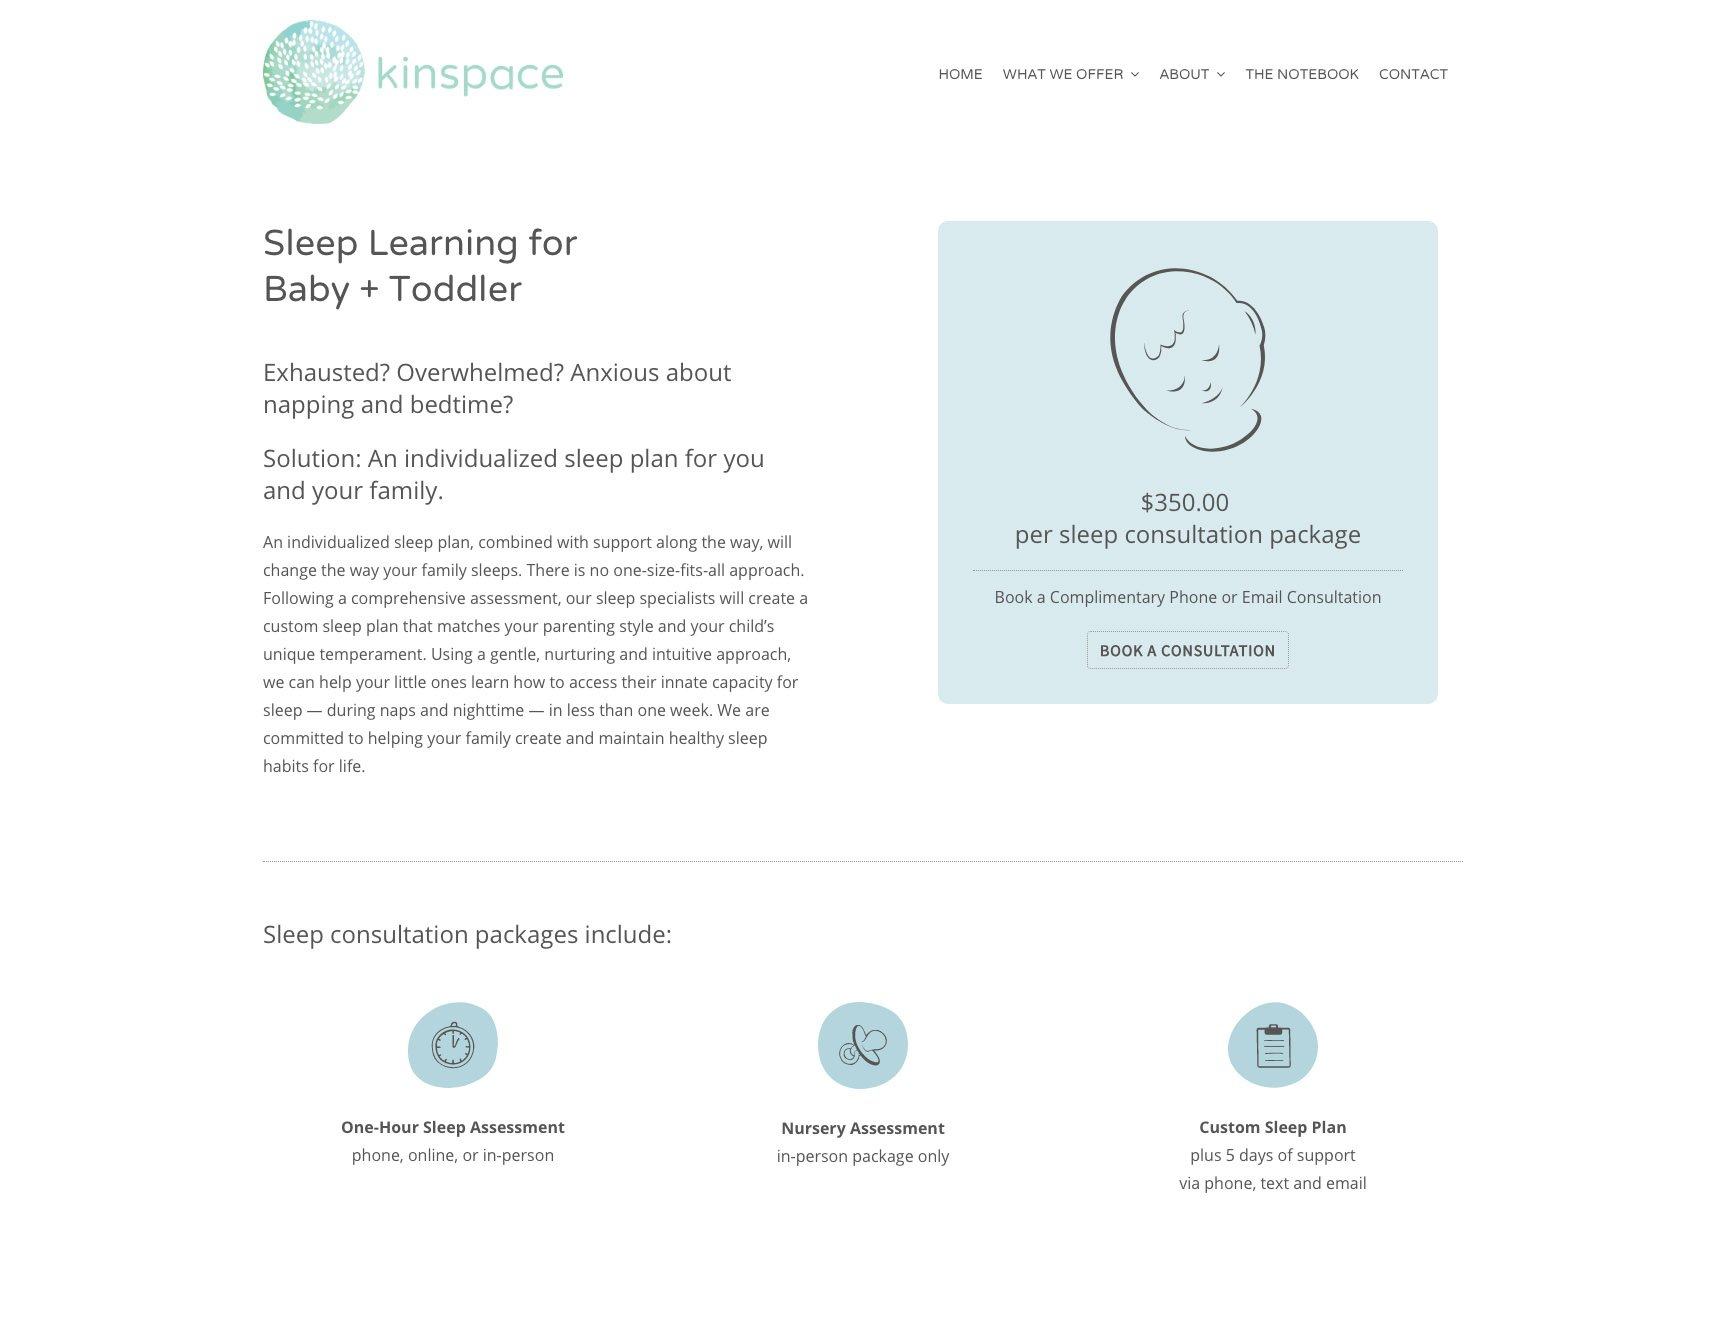 kinspace-sleeplearning